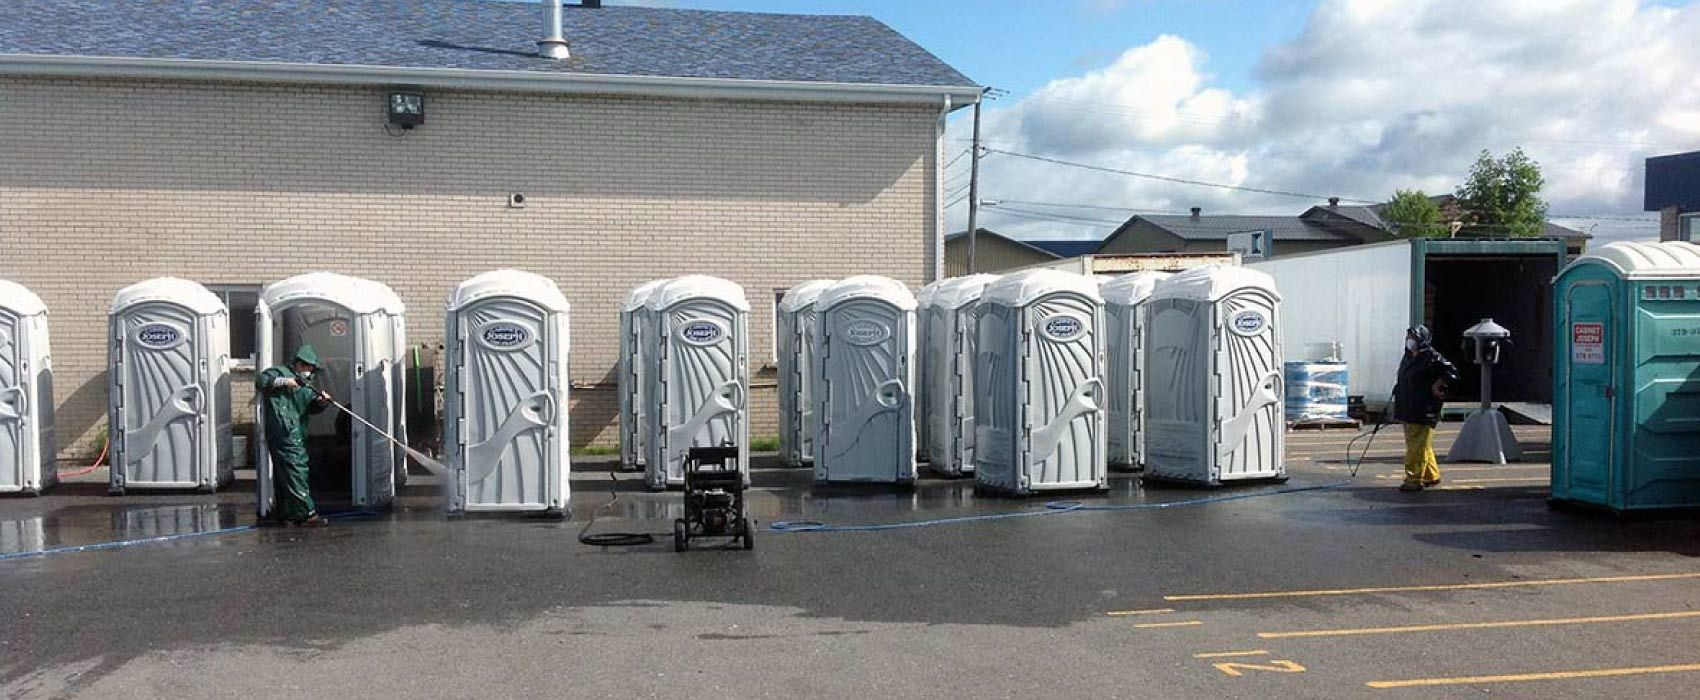 Portable toilet cleaning